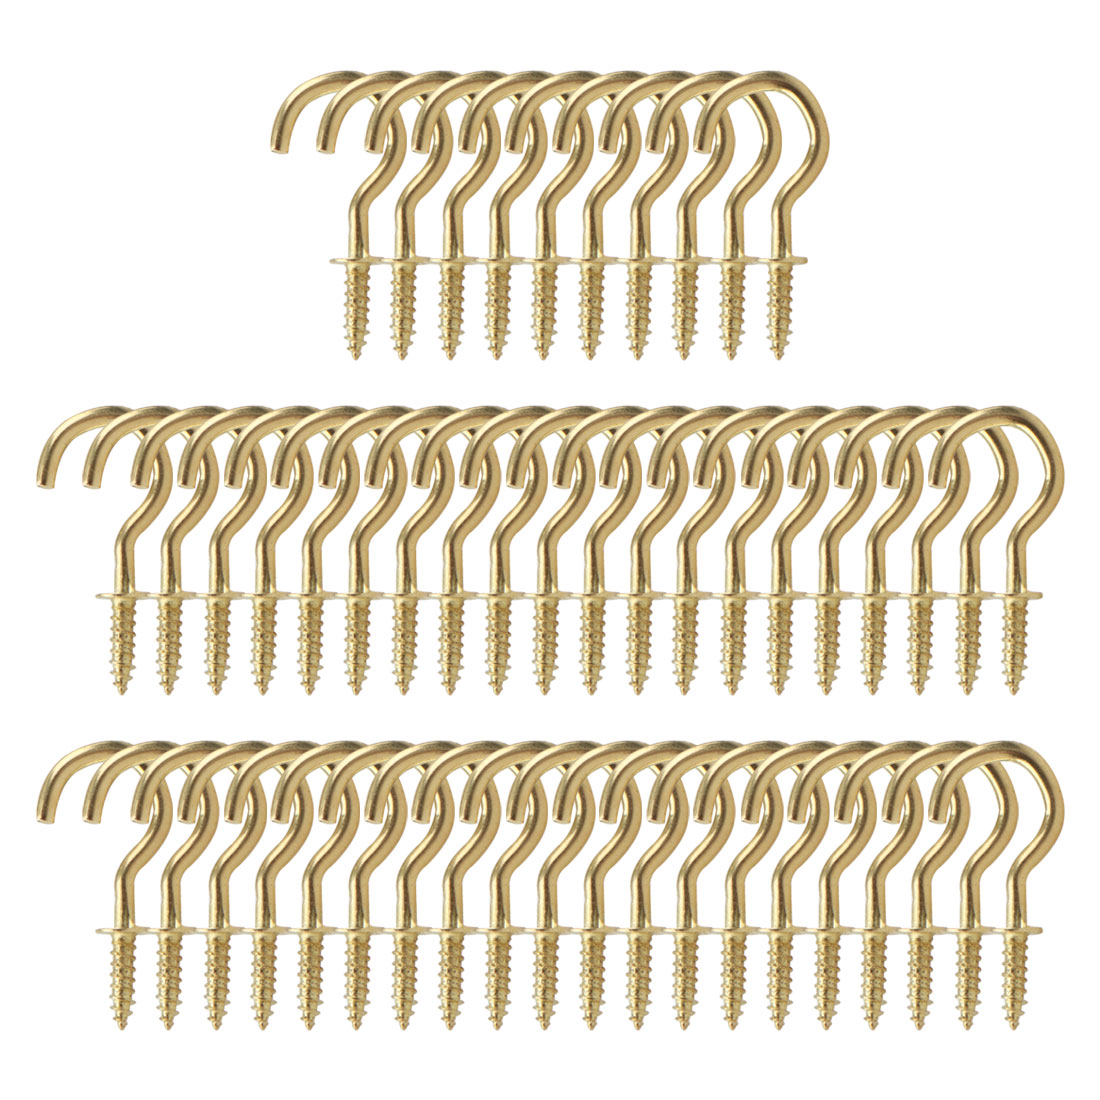 50pcs Cup Ceiling Hooks 3/4 Inch Copper Plating Screw Holder Gold Tone